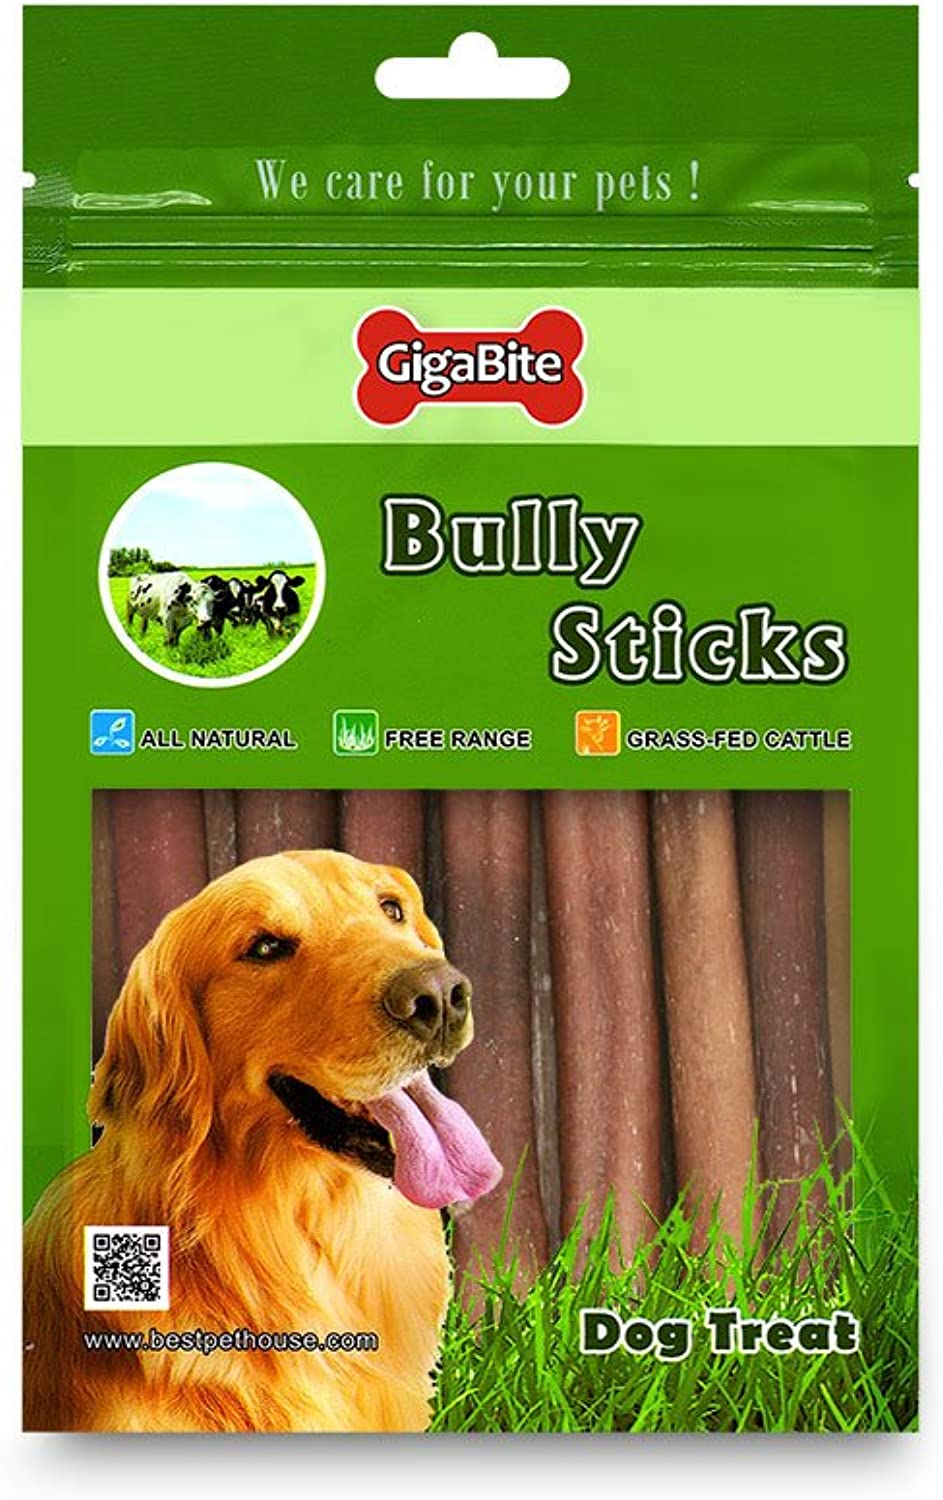 Best Pet Supplies BPS, FDA and USDA Certified Bully Sticks for Pets, 6Inch, 15Piece Per Pack